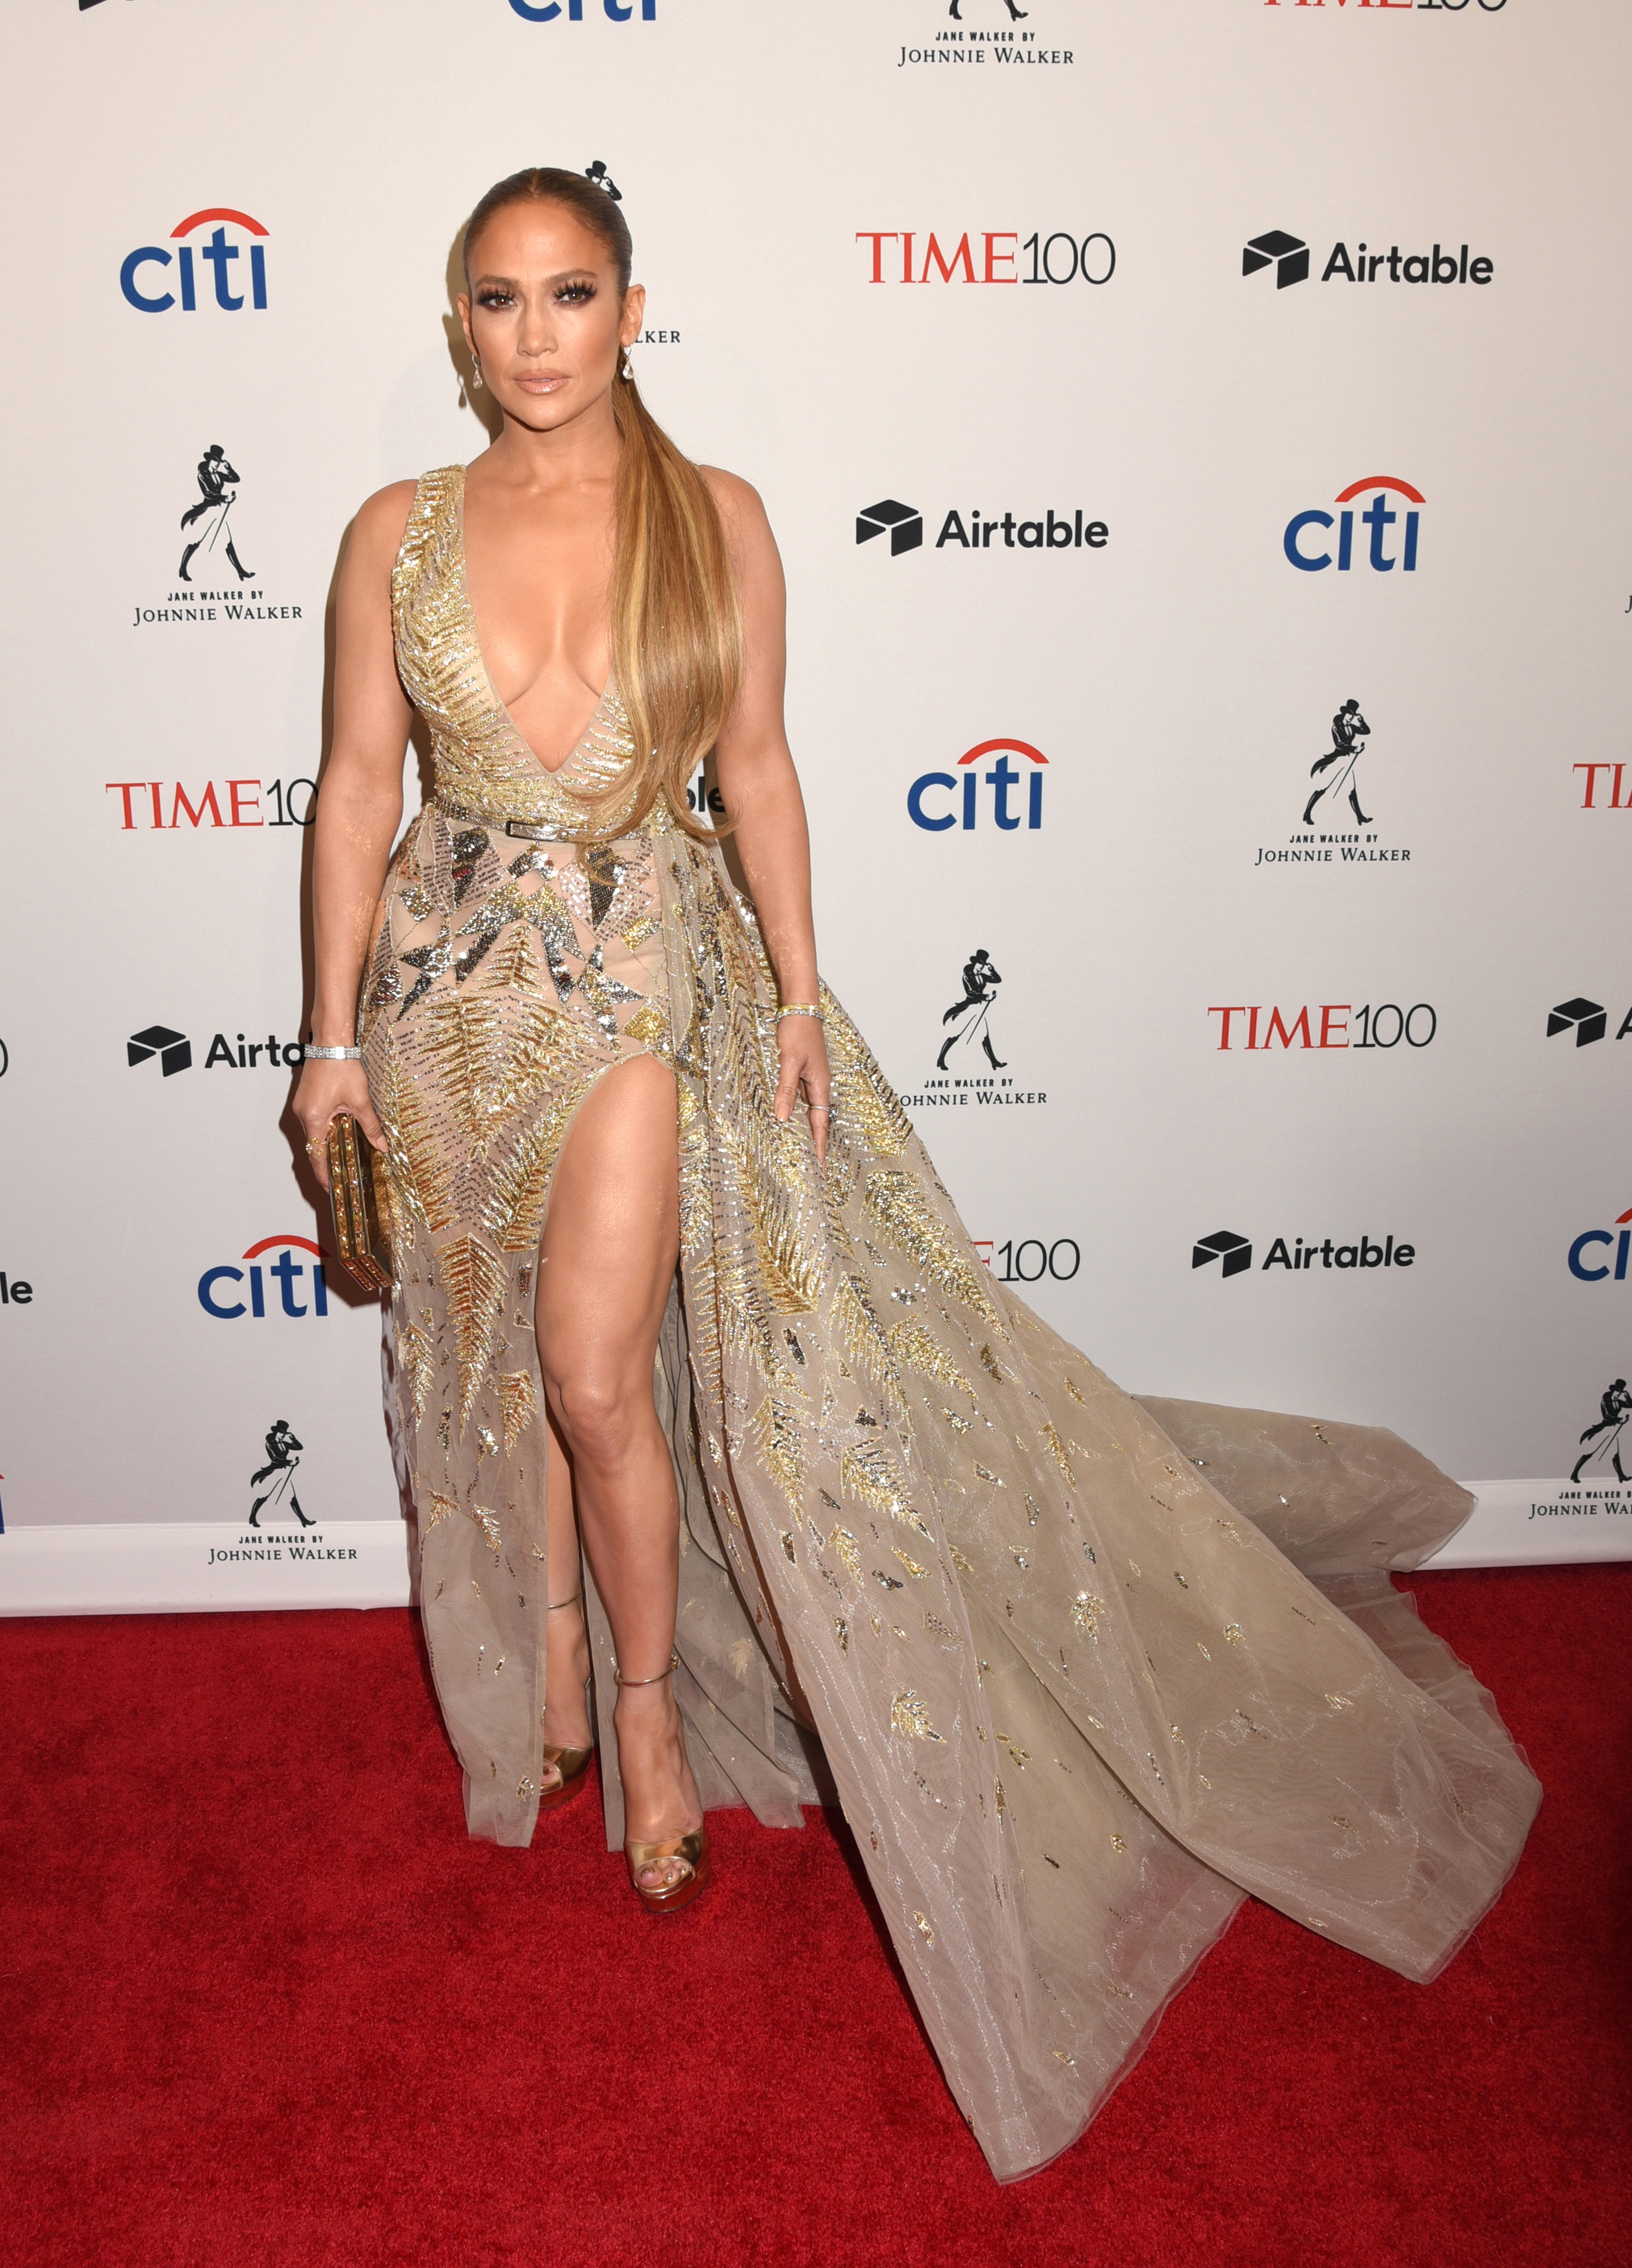 Celebrities attend the 2018 Time 100 Gala. Held @ Frederick P. Rose Hall at Lincoln Center, New York City, NY. April 24, 2018.  © Photo Image Press/Splash News <P> Pictured: Jennifer Lopez <B>Ref: SPL1687307  240418  </B><BR/> Picture by: Photo Image Press<BR/> </P><P> <B>Splash News and Pictures</B><BR/> Los Angeles:310-821-2666<BR/> New York:212-619-2666<BR/> London:870-934-2666<BR/> <span id=